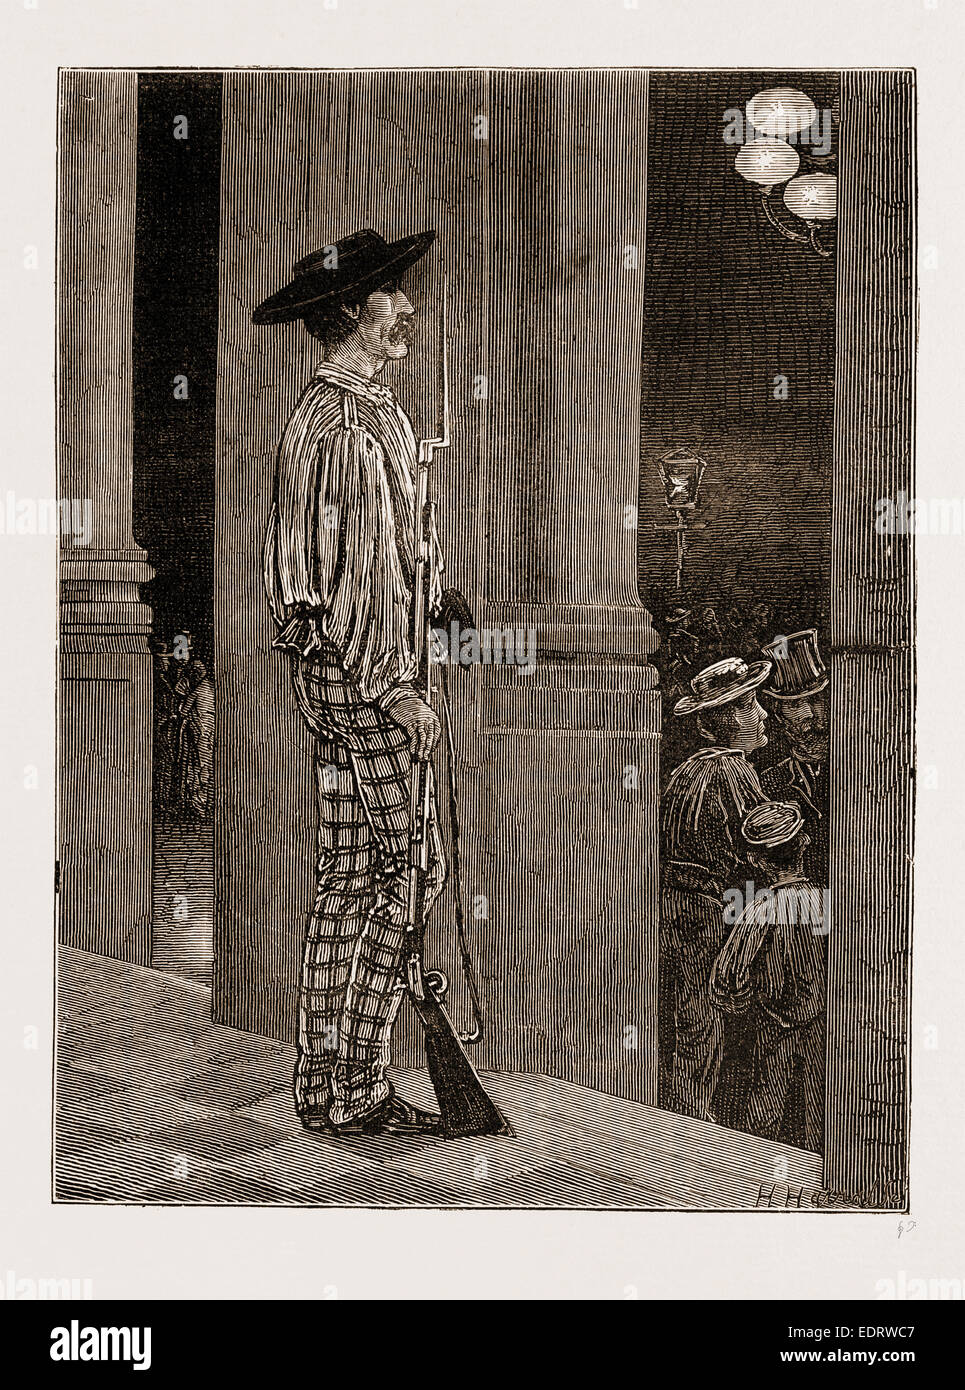 A NATIONAL GUARD SENTRY BEFORE THE HOTEL DE VILLE, SEVILLE, SPAIN 1873 - Stock Image